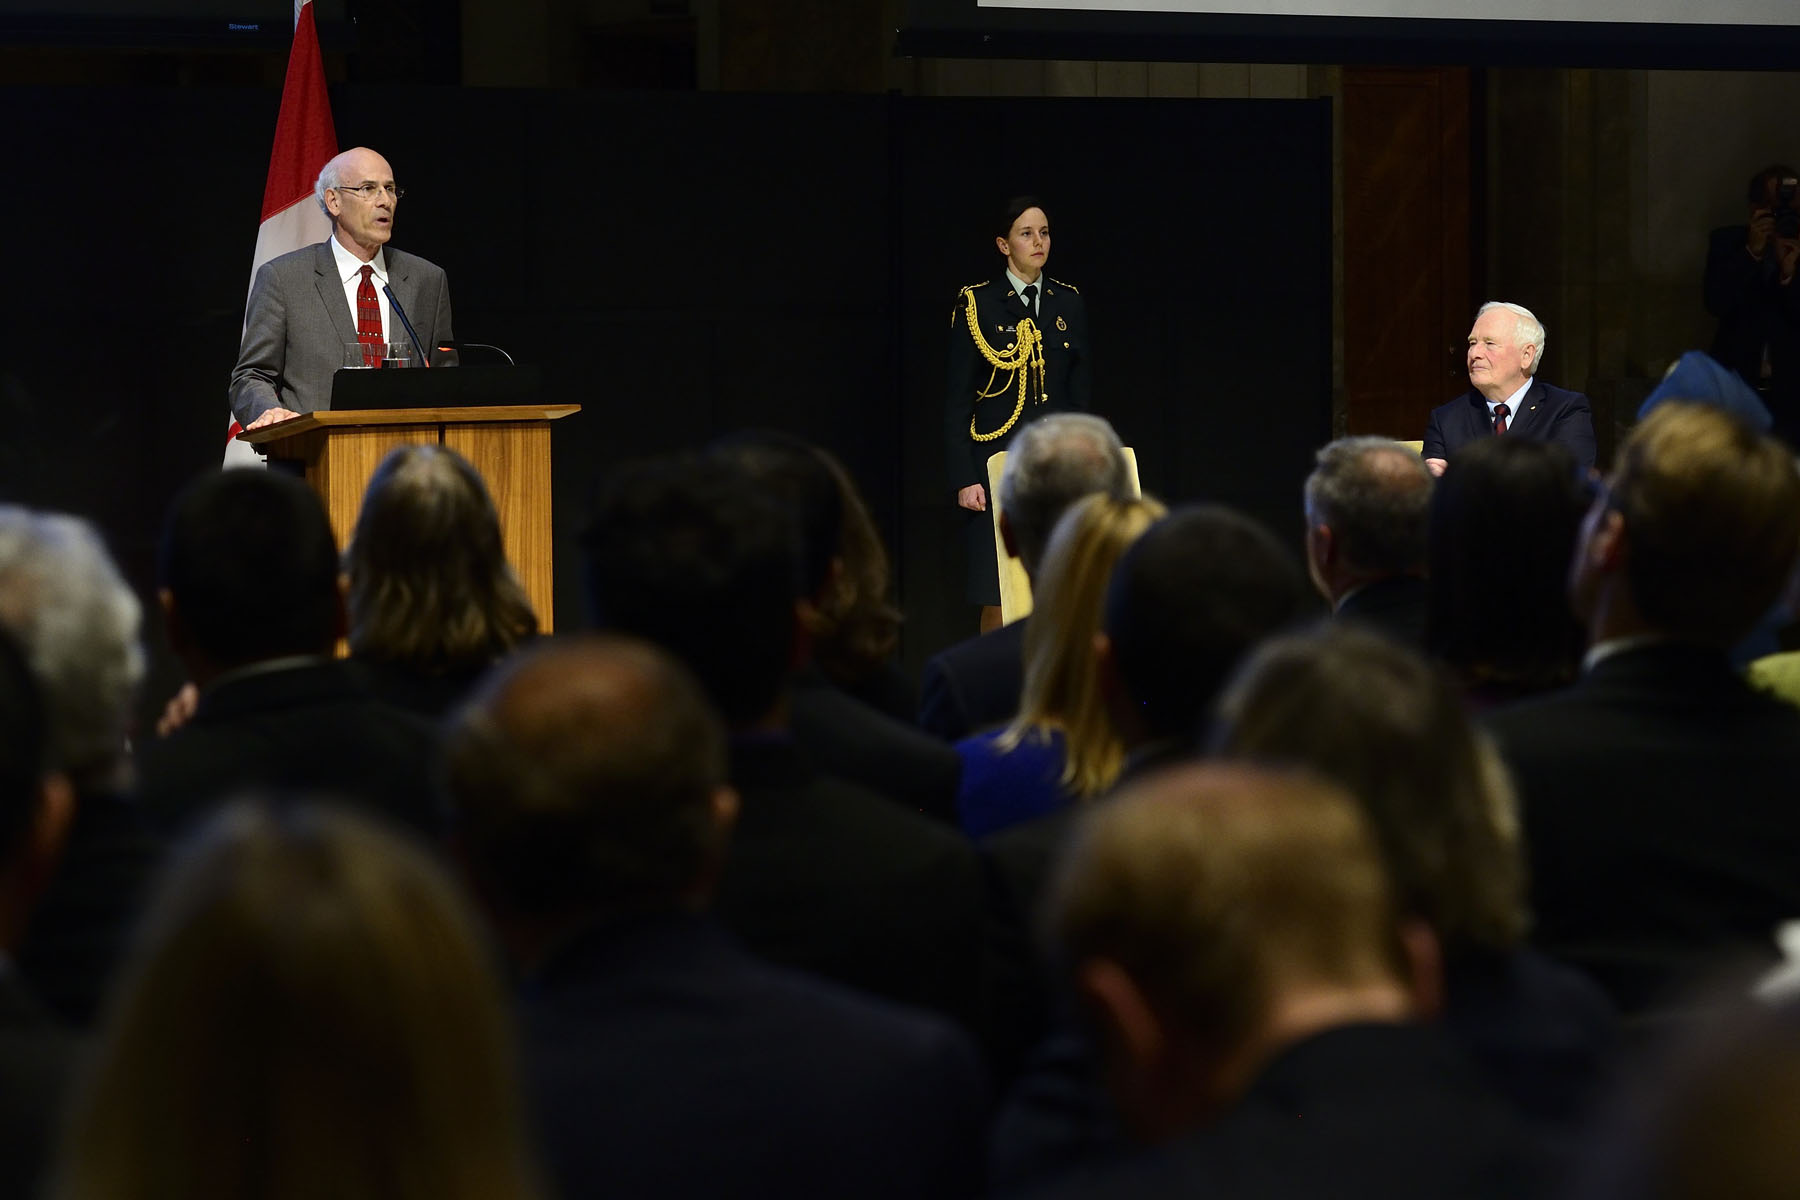 Mr. Michael Wernick, Clerk of the Privy Council, Secretary to the Cabinet and Head of the Public Service thanked public servants for their hard work and dedication.